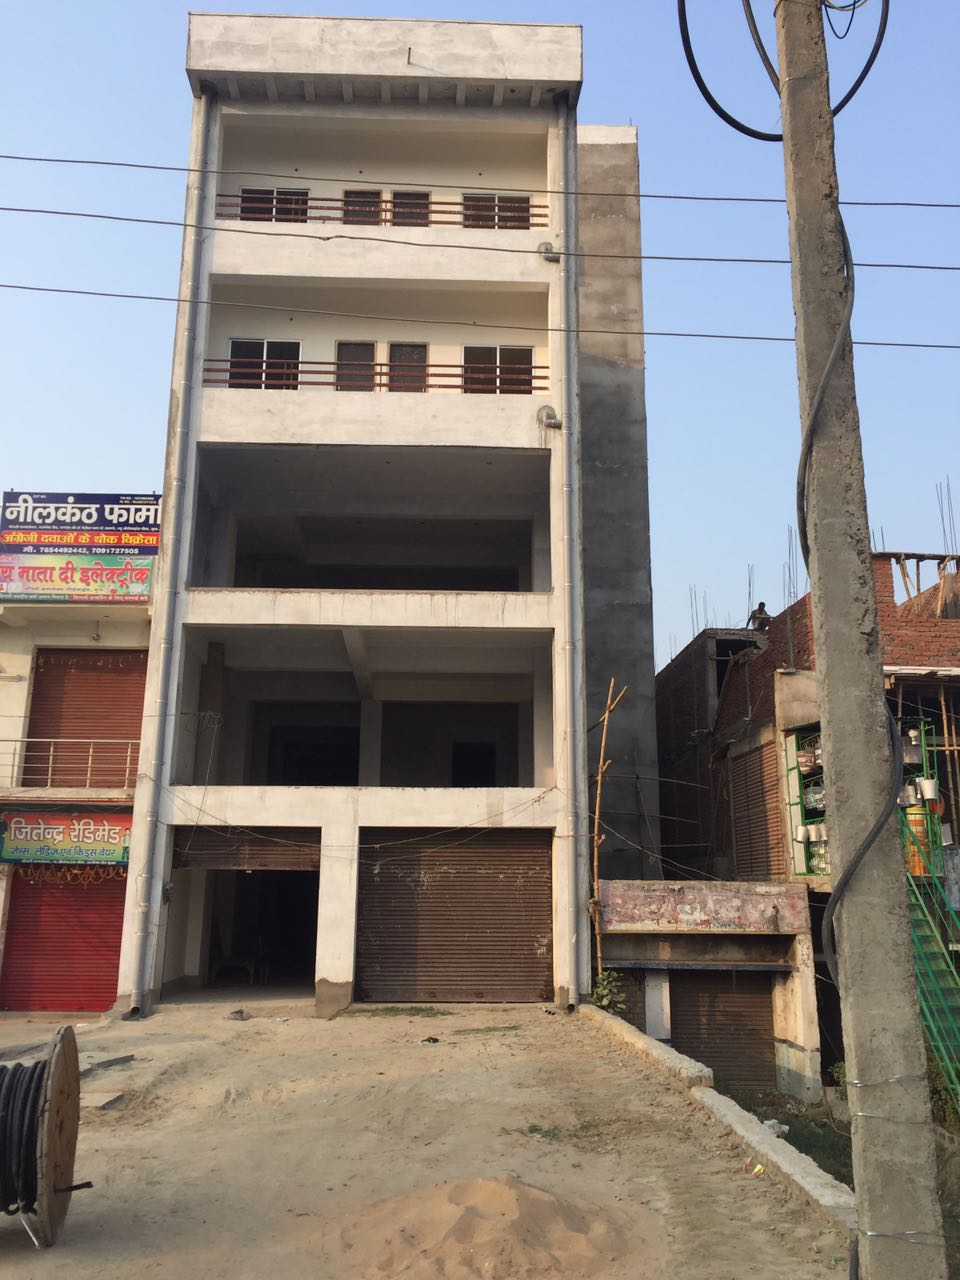 Commercial At Zero Mile Chowk- 2 Units Of Of 4500 Sqft Each Available For Rent For Showrooms, Malls, Multi-brand Outlet